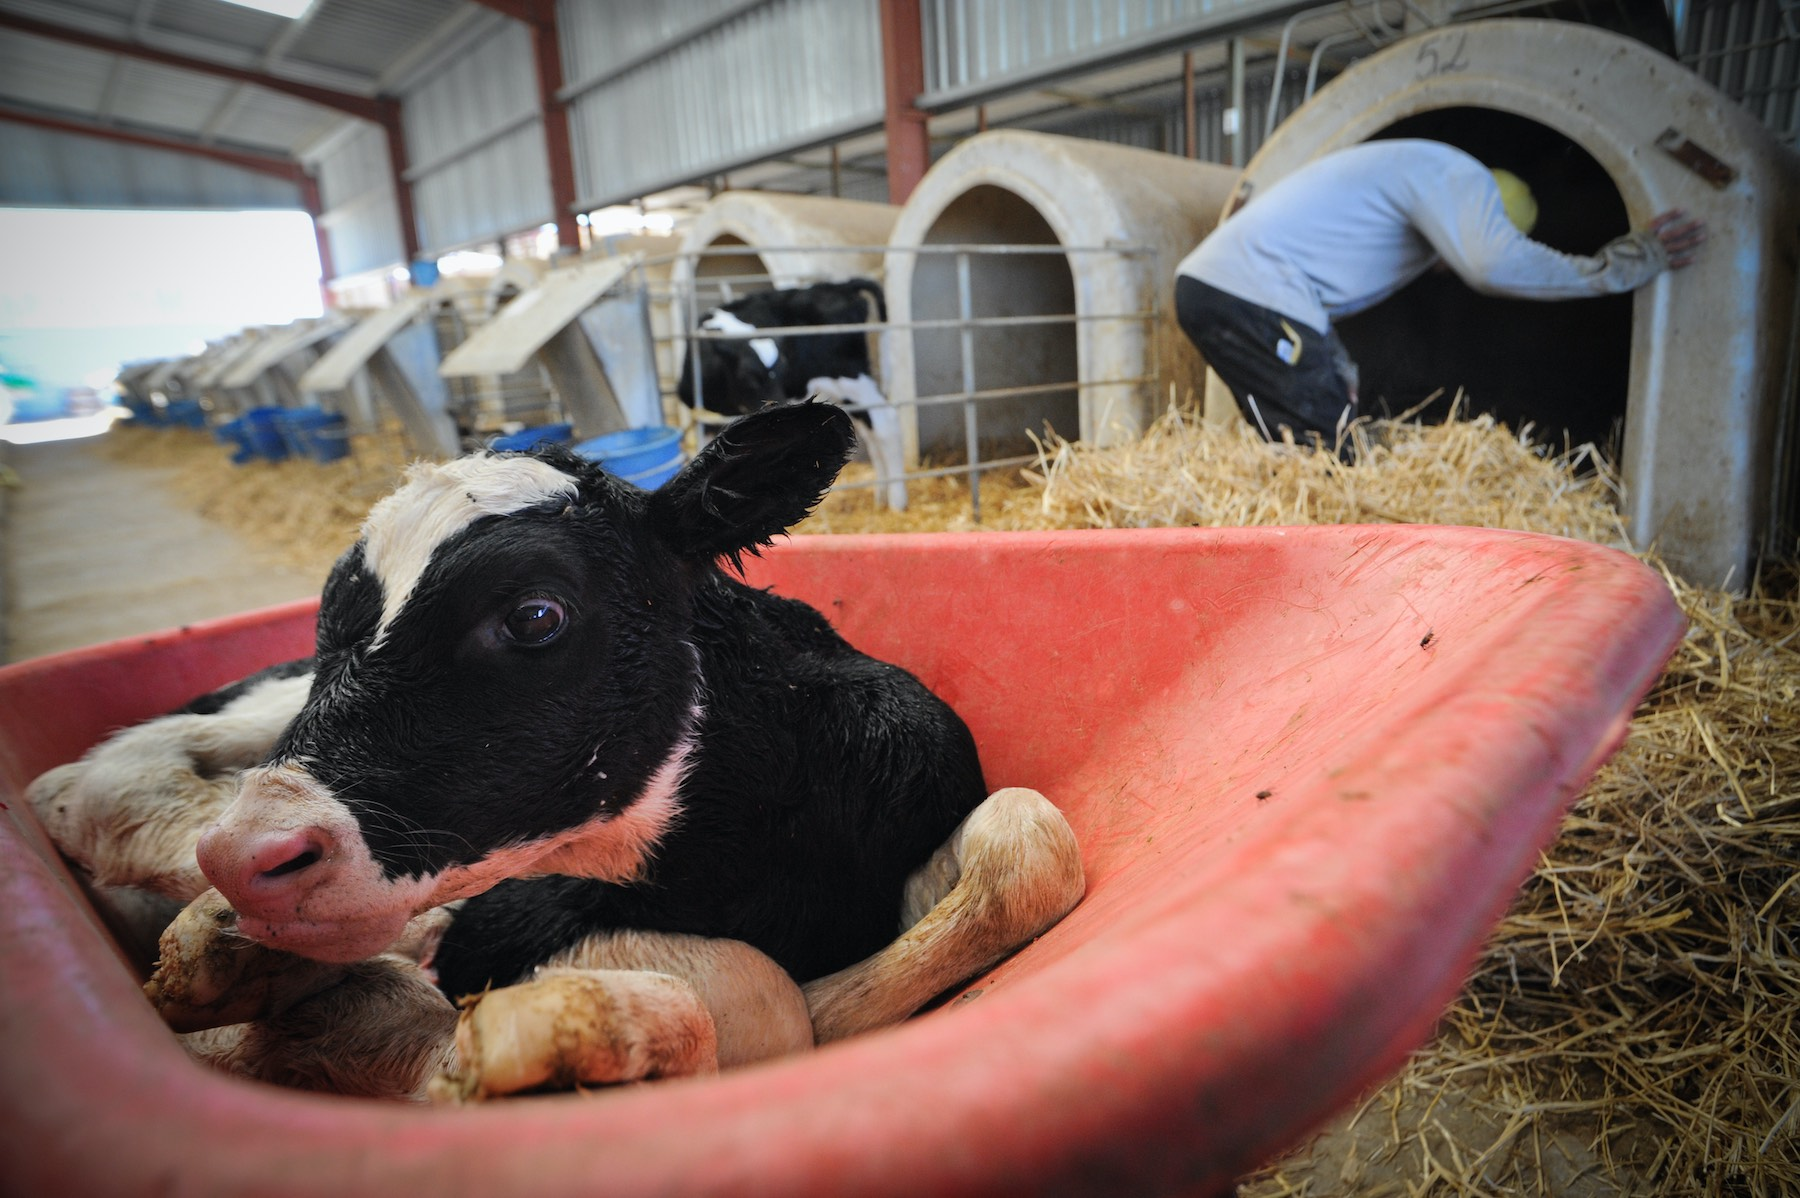 Dairy Veal Farm / We Animals Media